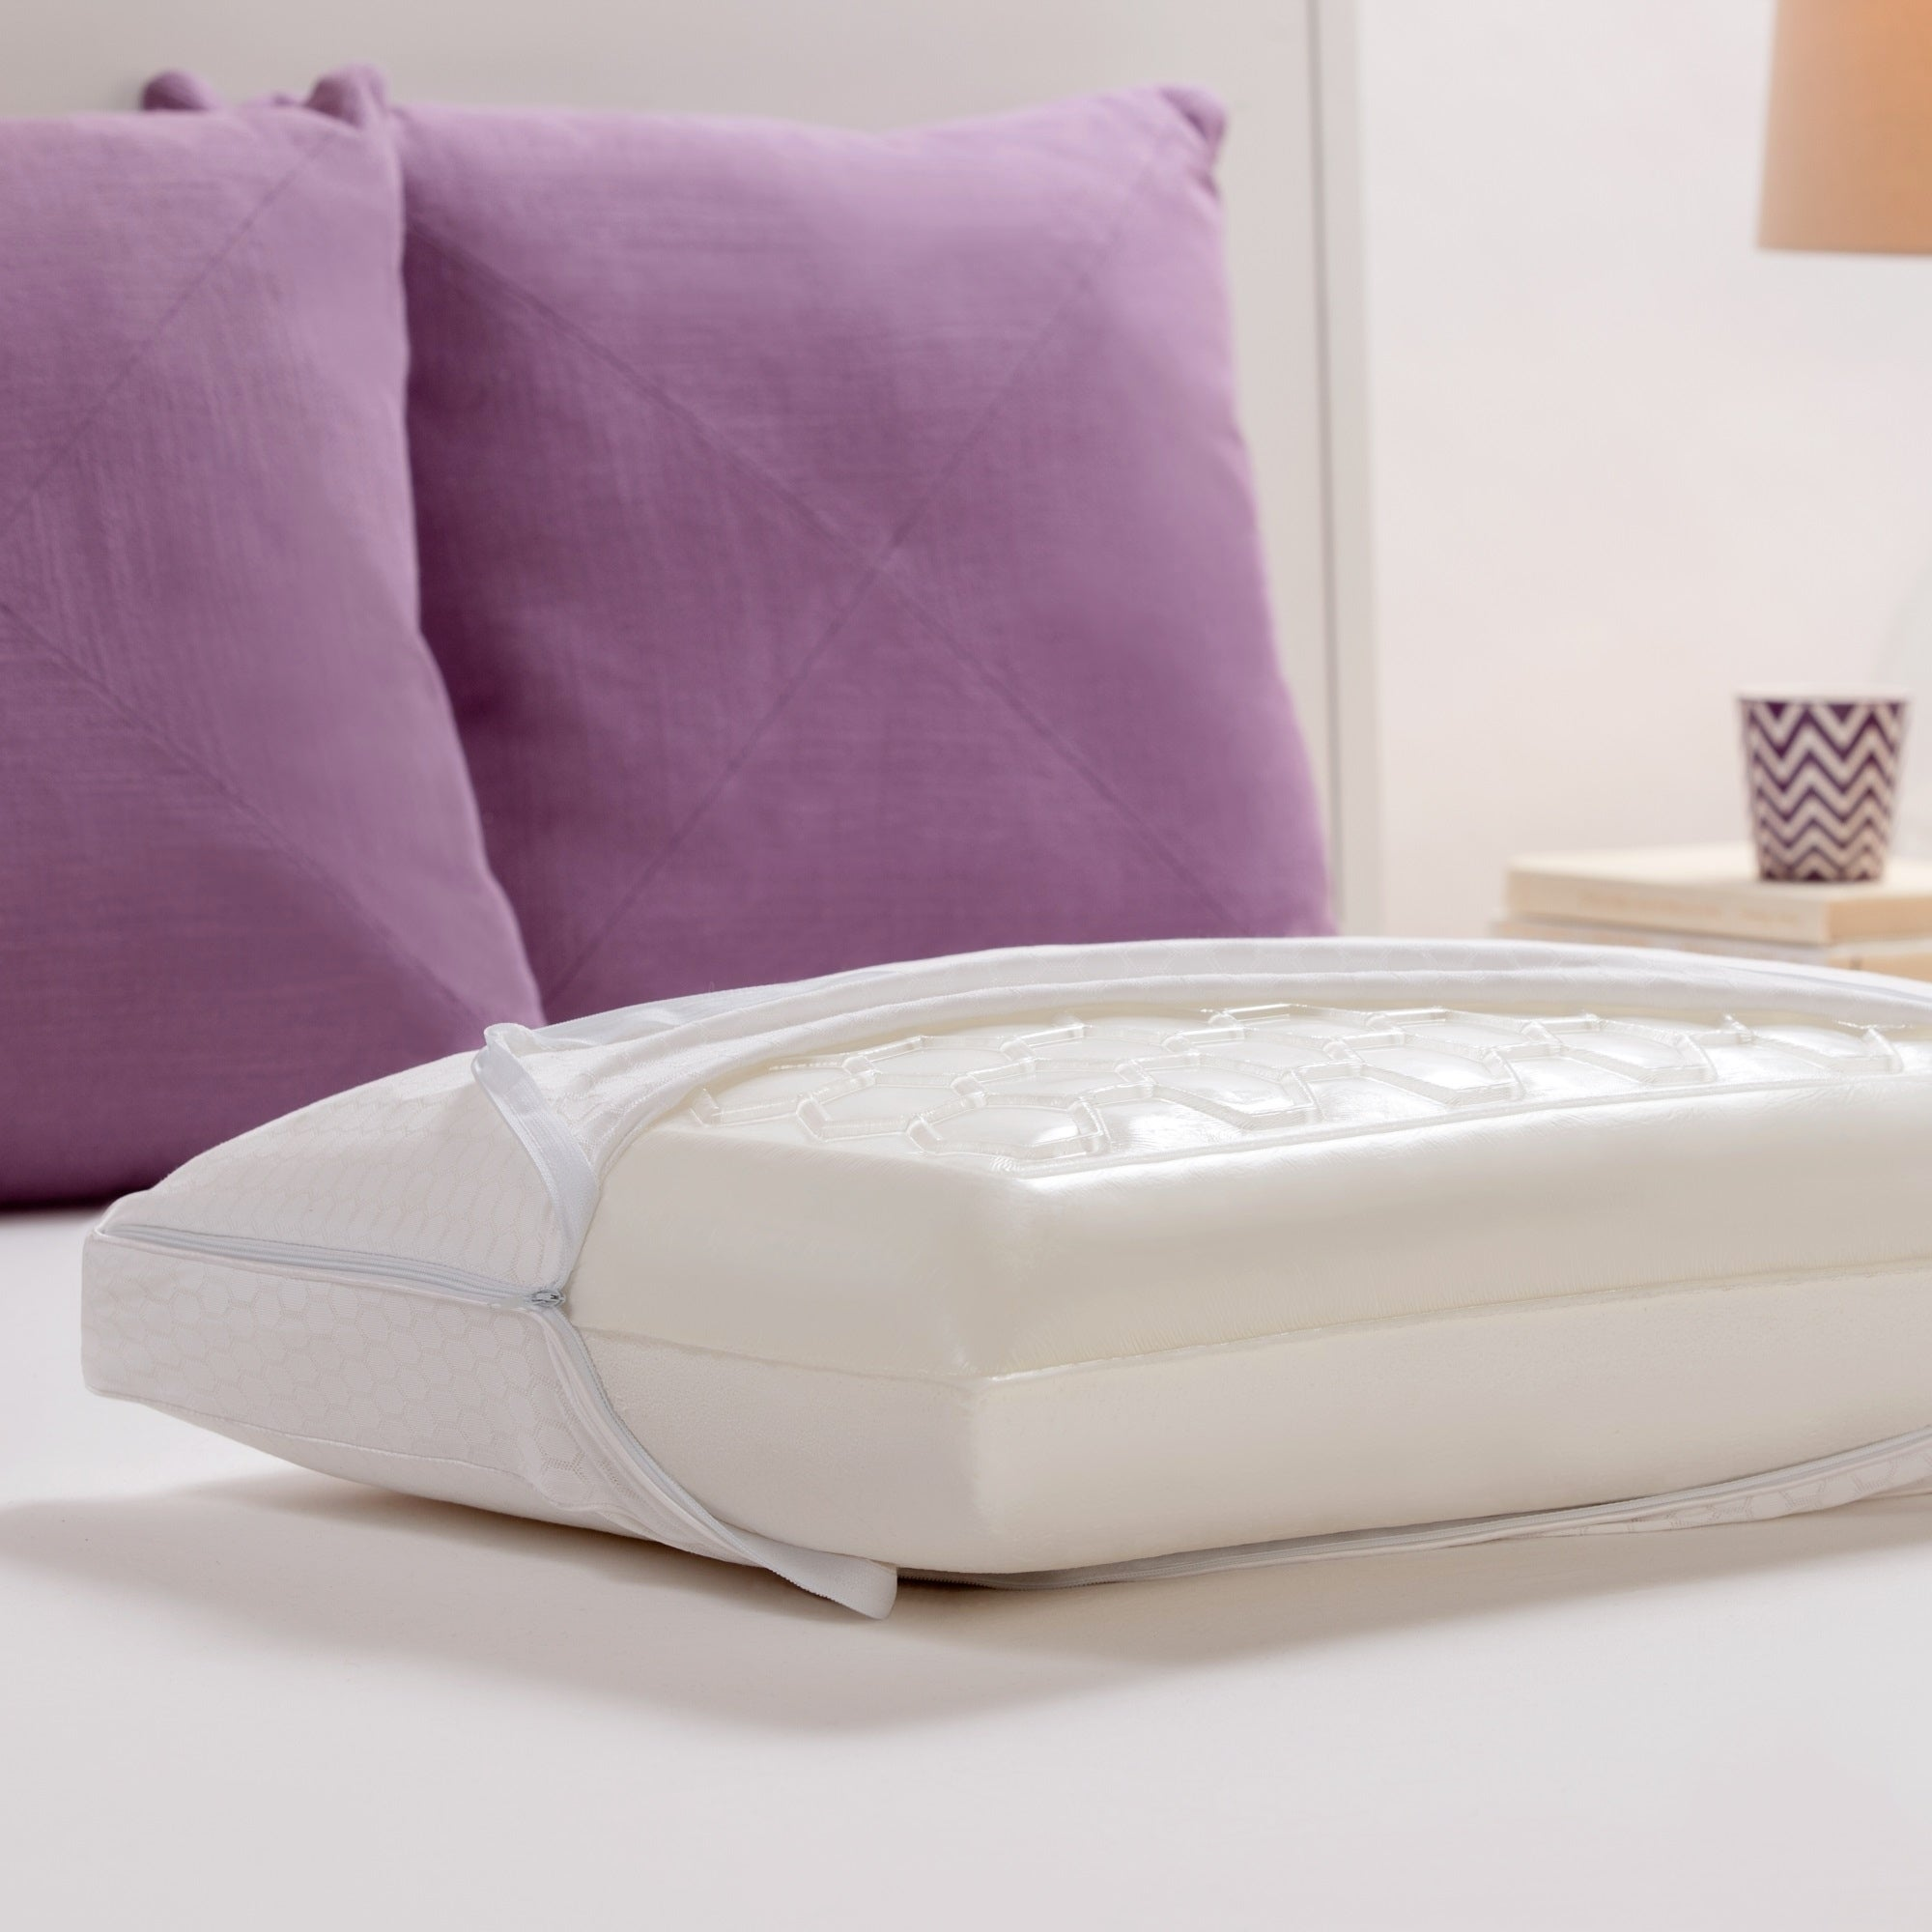 from truenergy co y gardner previous white beautyrest pillow plush furniture foam memory comforpedic pcok